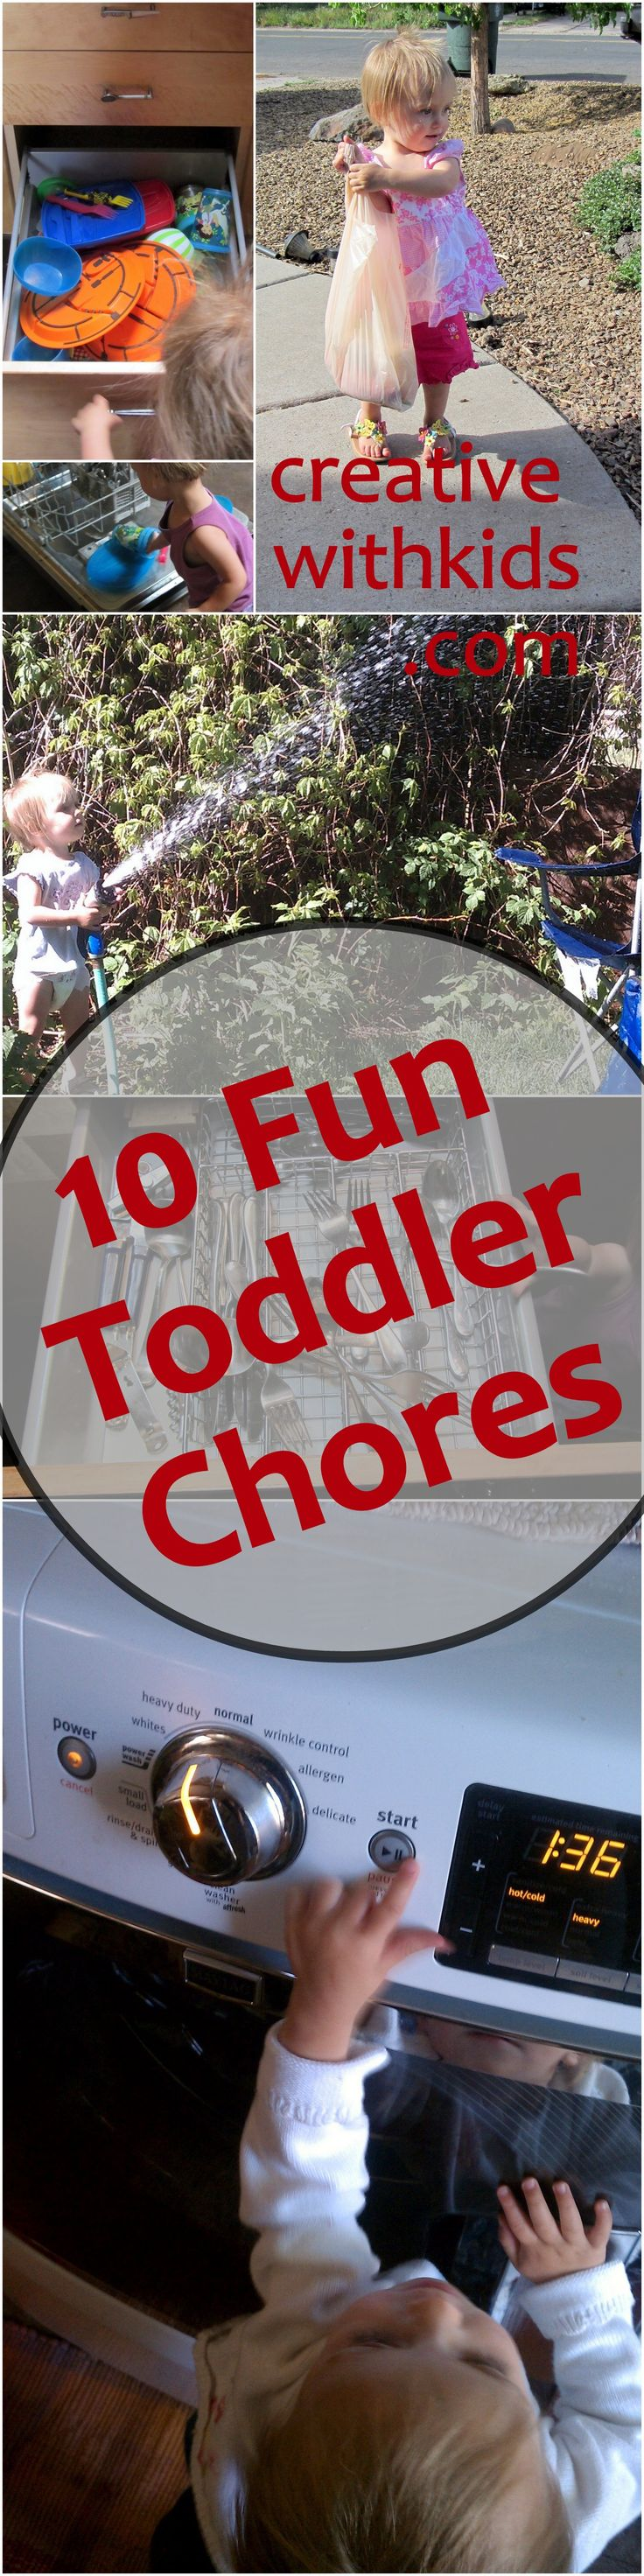 "Toddler Chores - because they want to ""Howp!"""